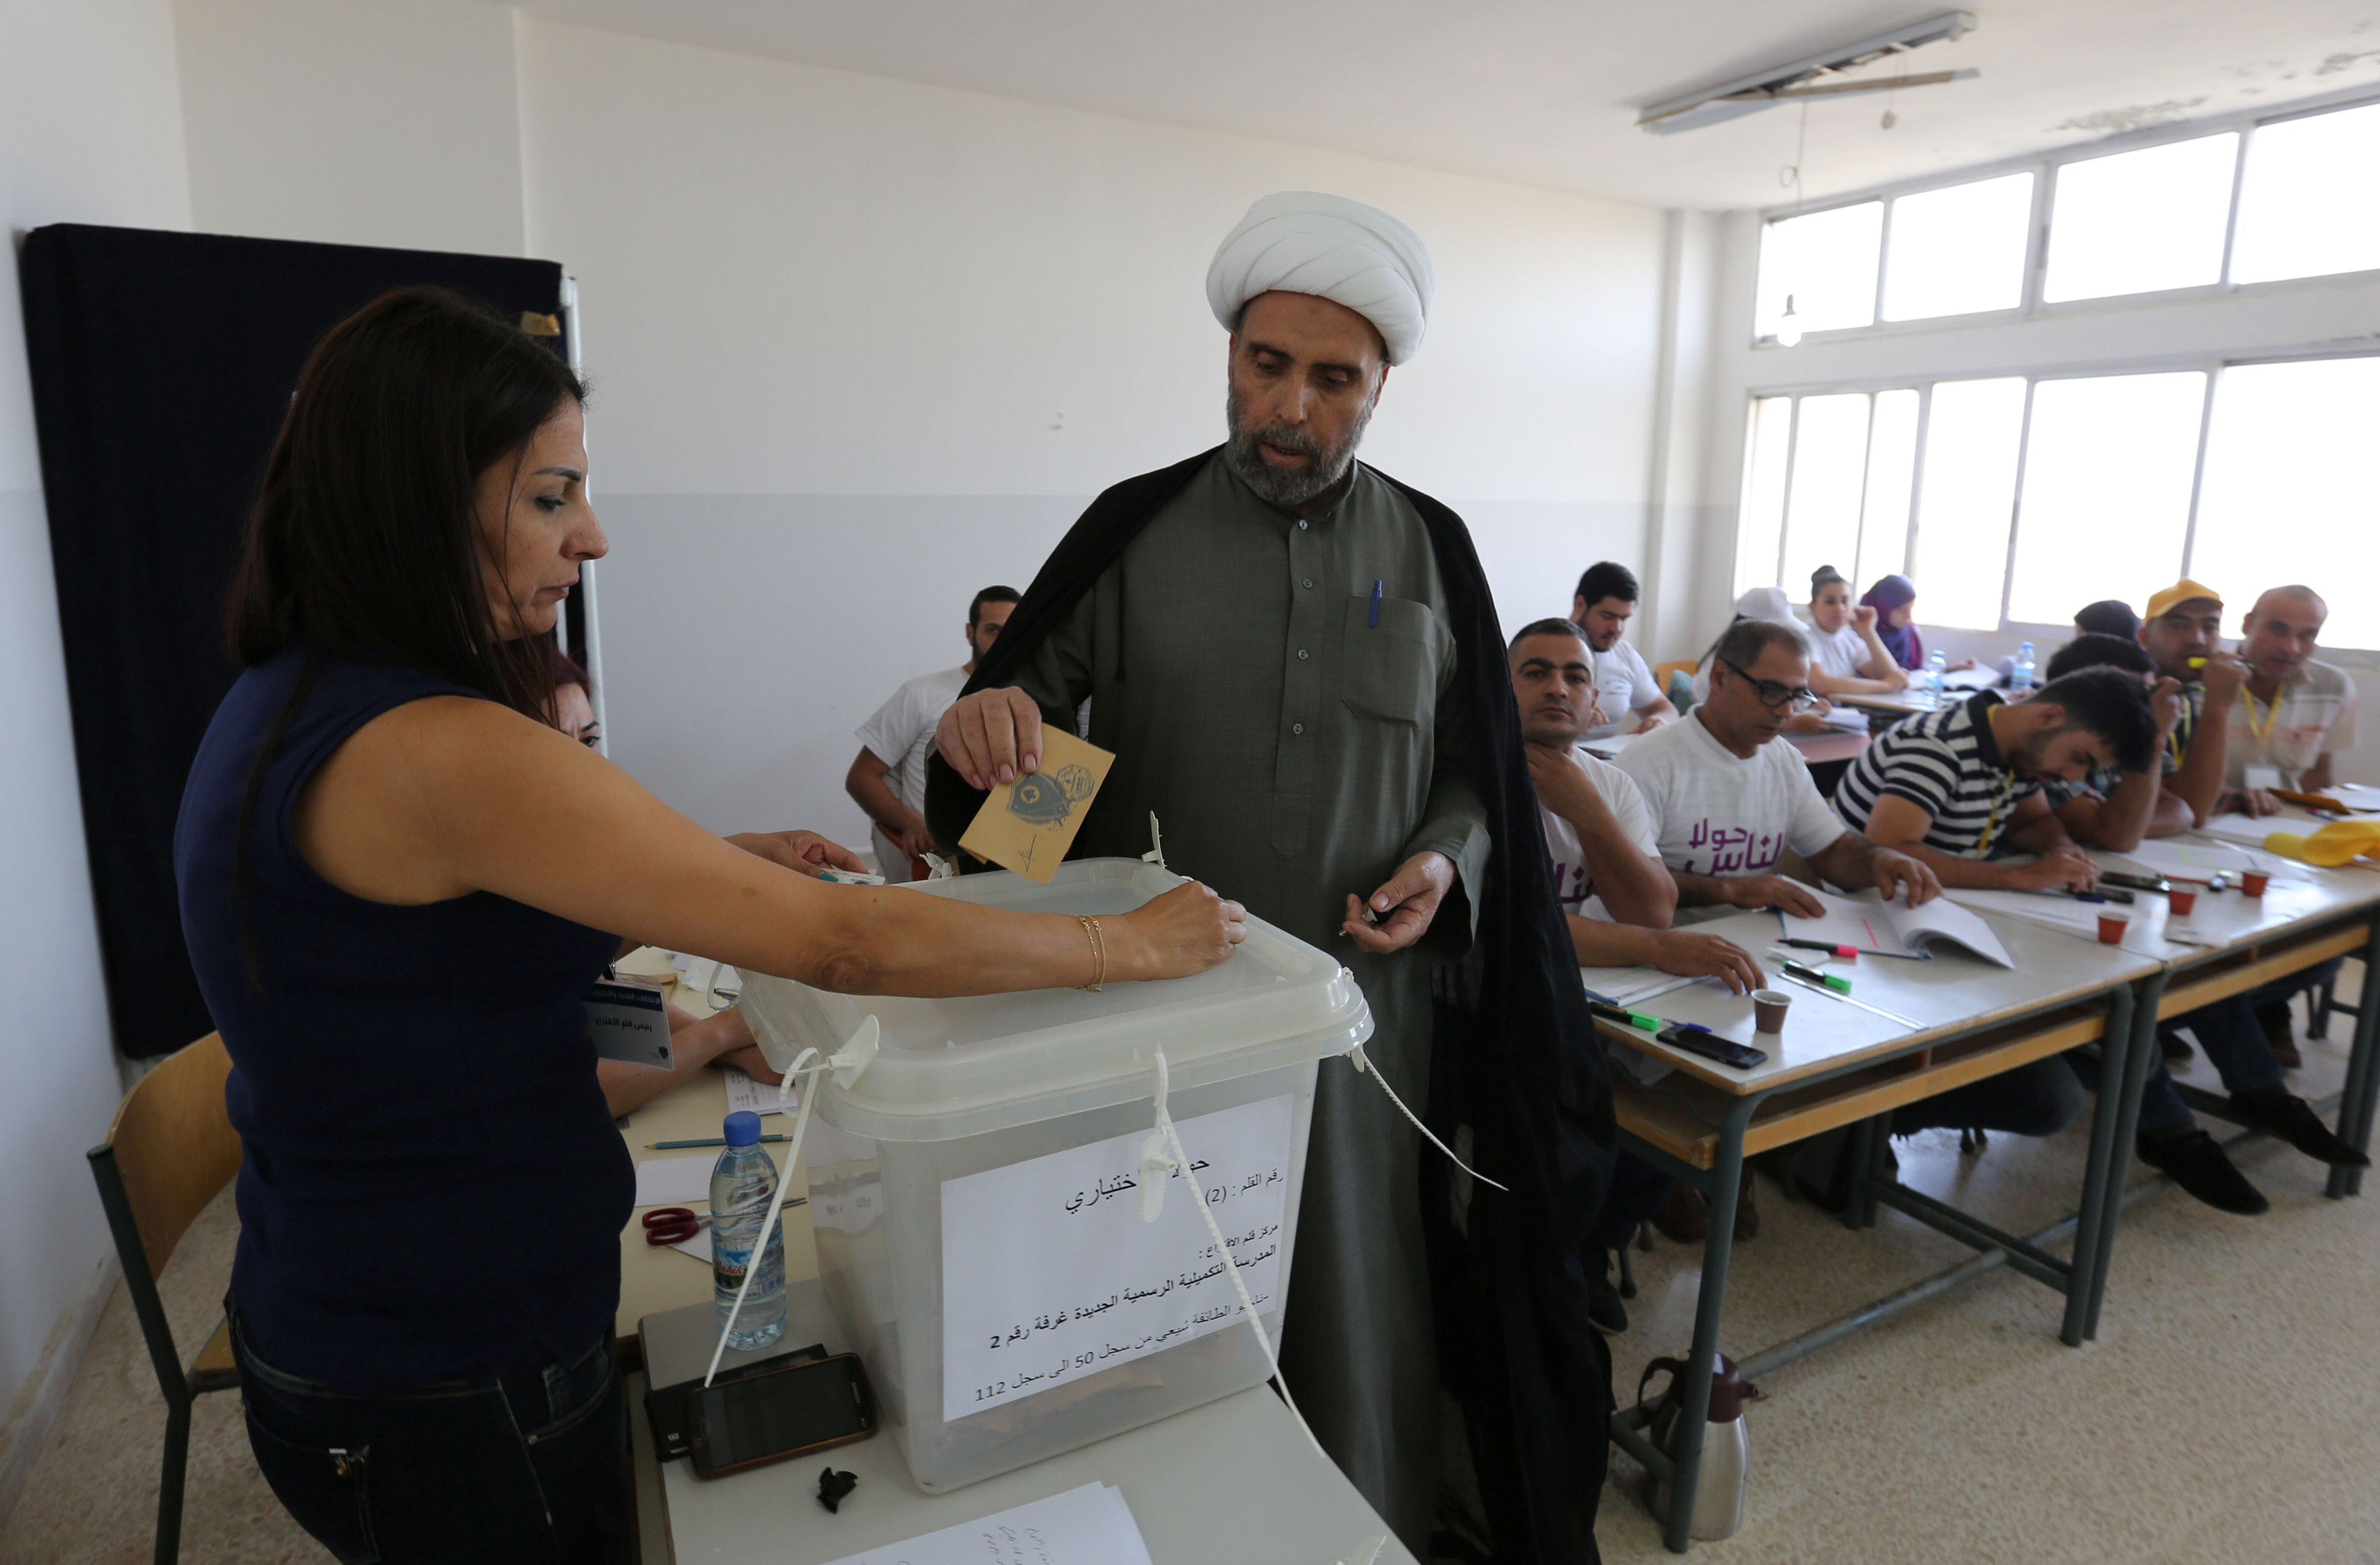 A Muslim Sheikh casts his ballot at a polling station during municipal elections in Houla village, southern Lebanon, May 22, 2016. REUTERS/Aziz Taher - S1BETFNDFFAA